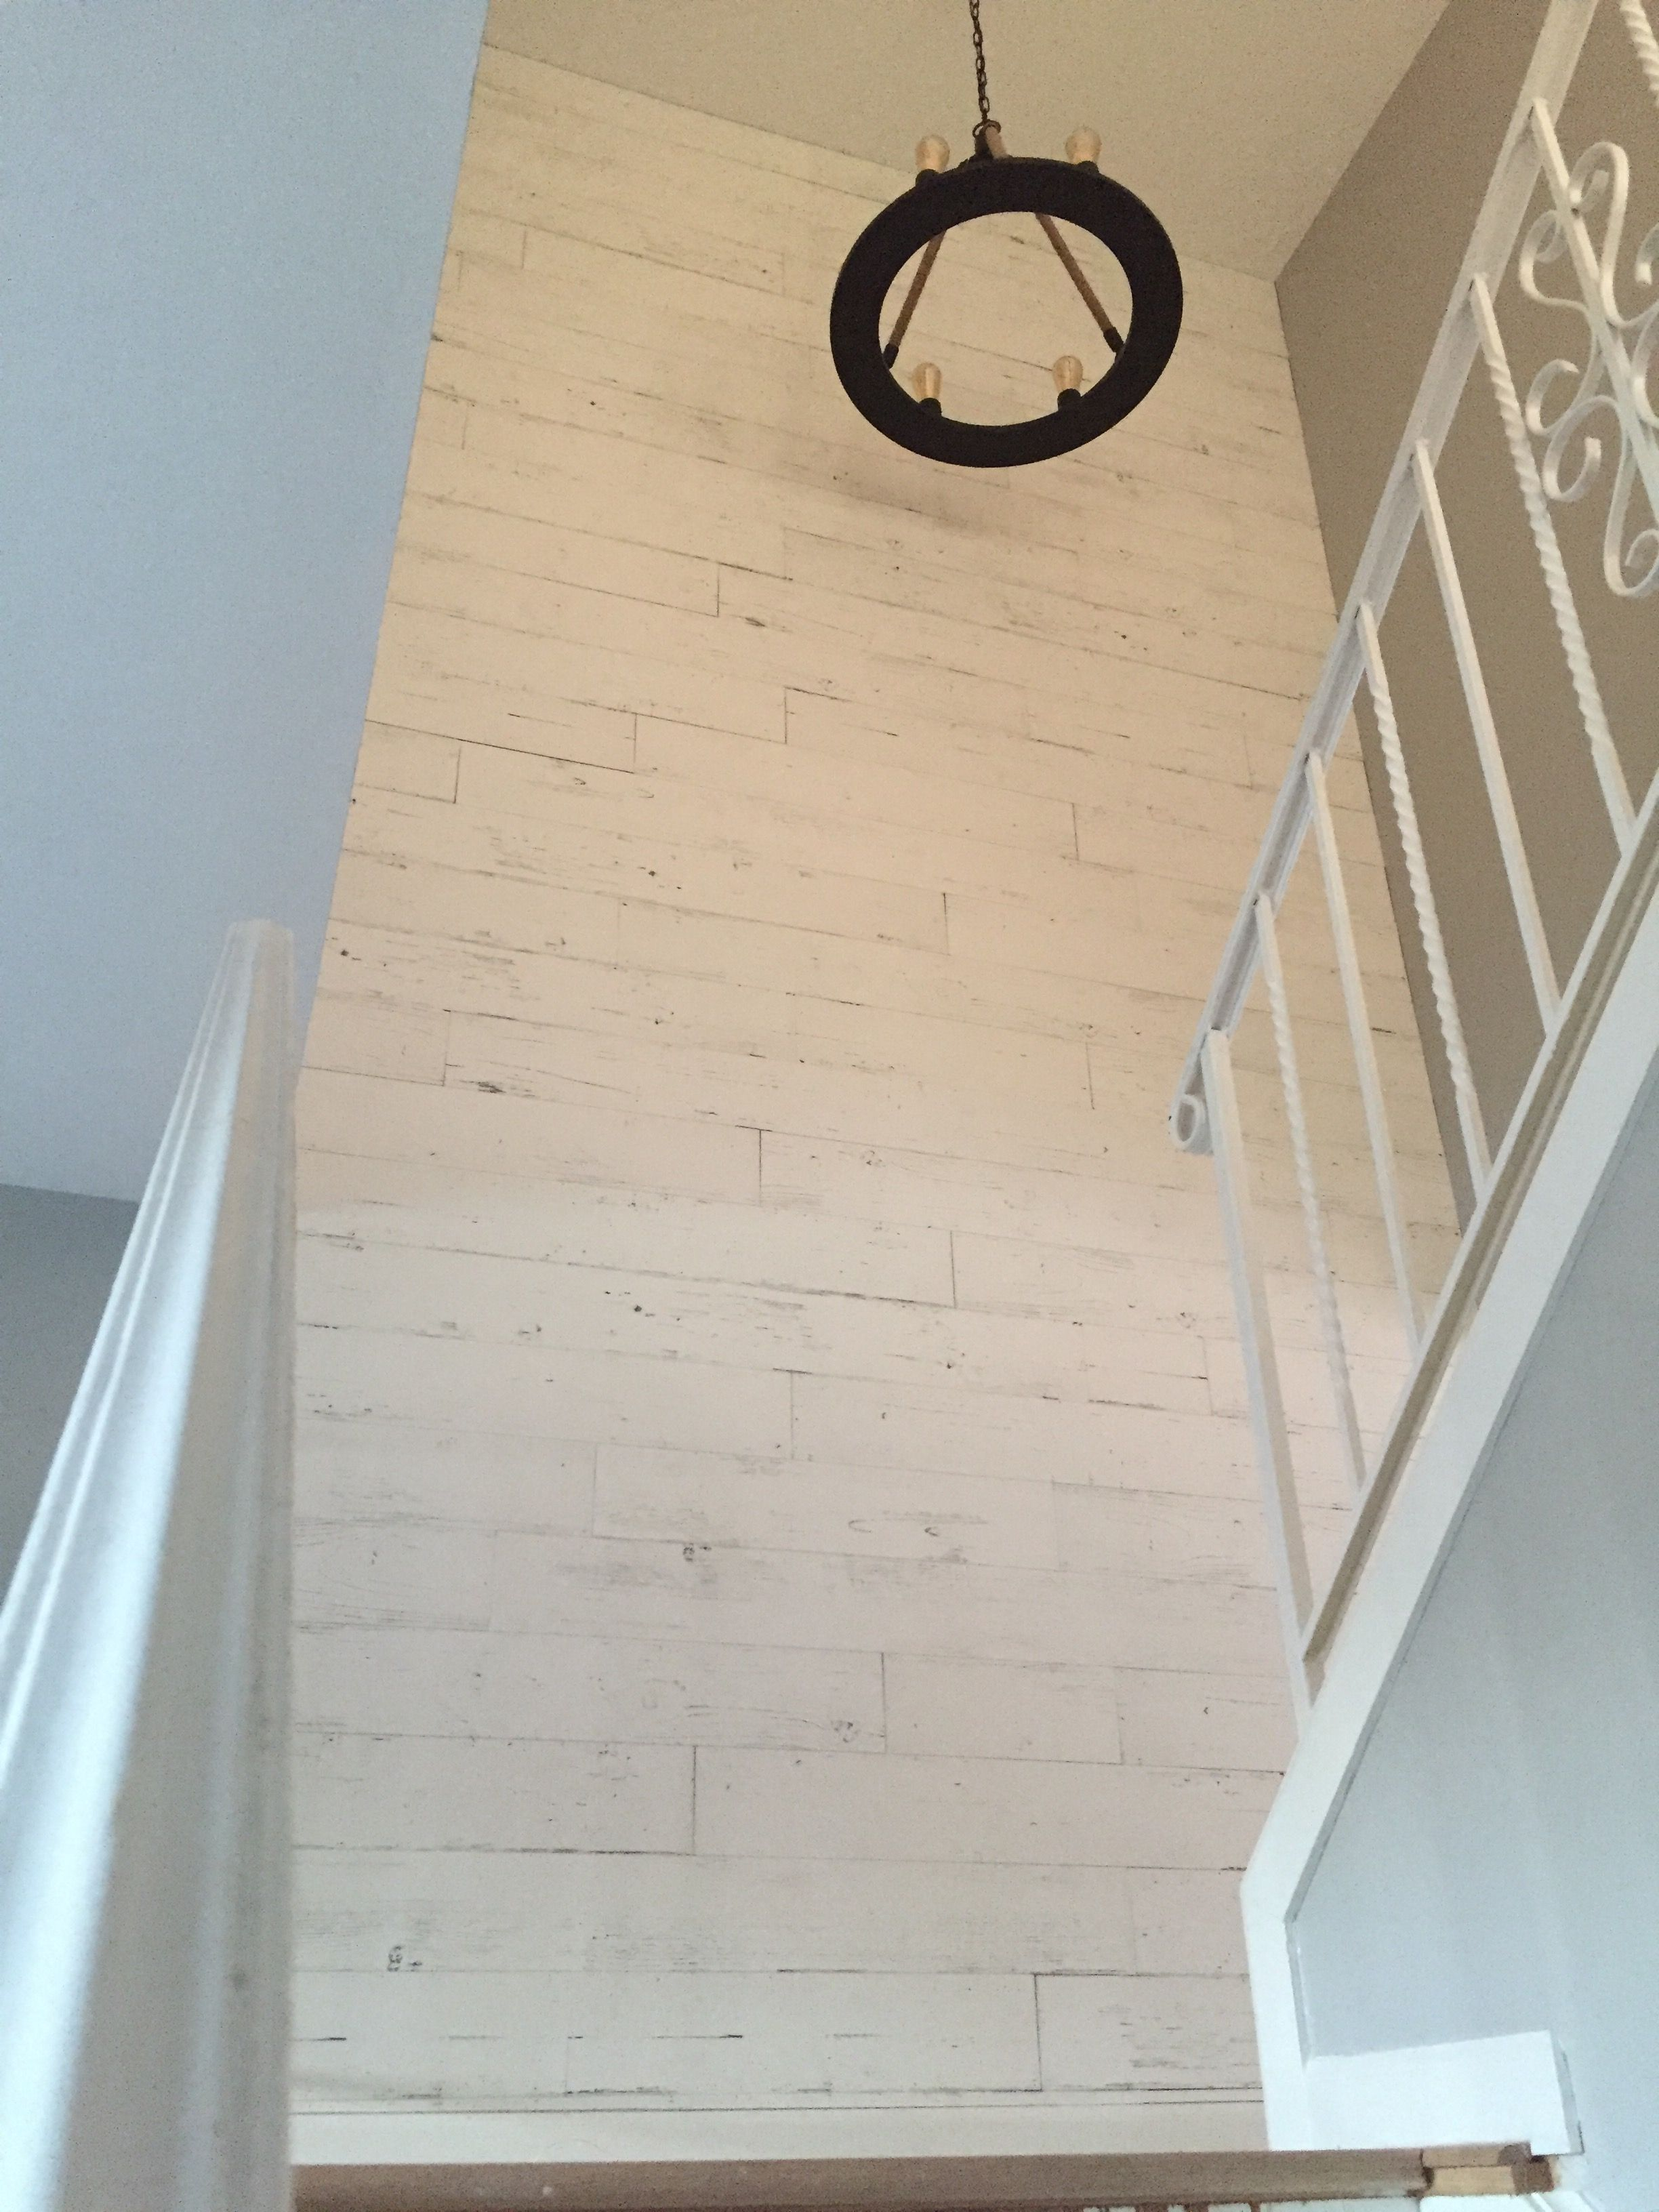 Easy To Install Wood Wallplank Picket Fence Peel And Stick It S That Easy Manufactured In The Usa Stick On Wood Wall White Wood Wall Peel And Stick Wood